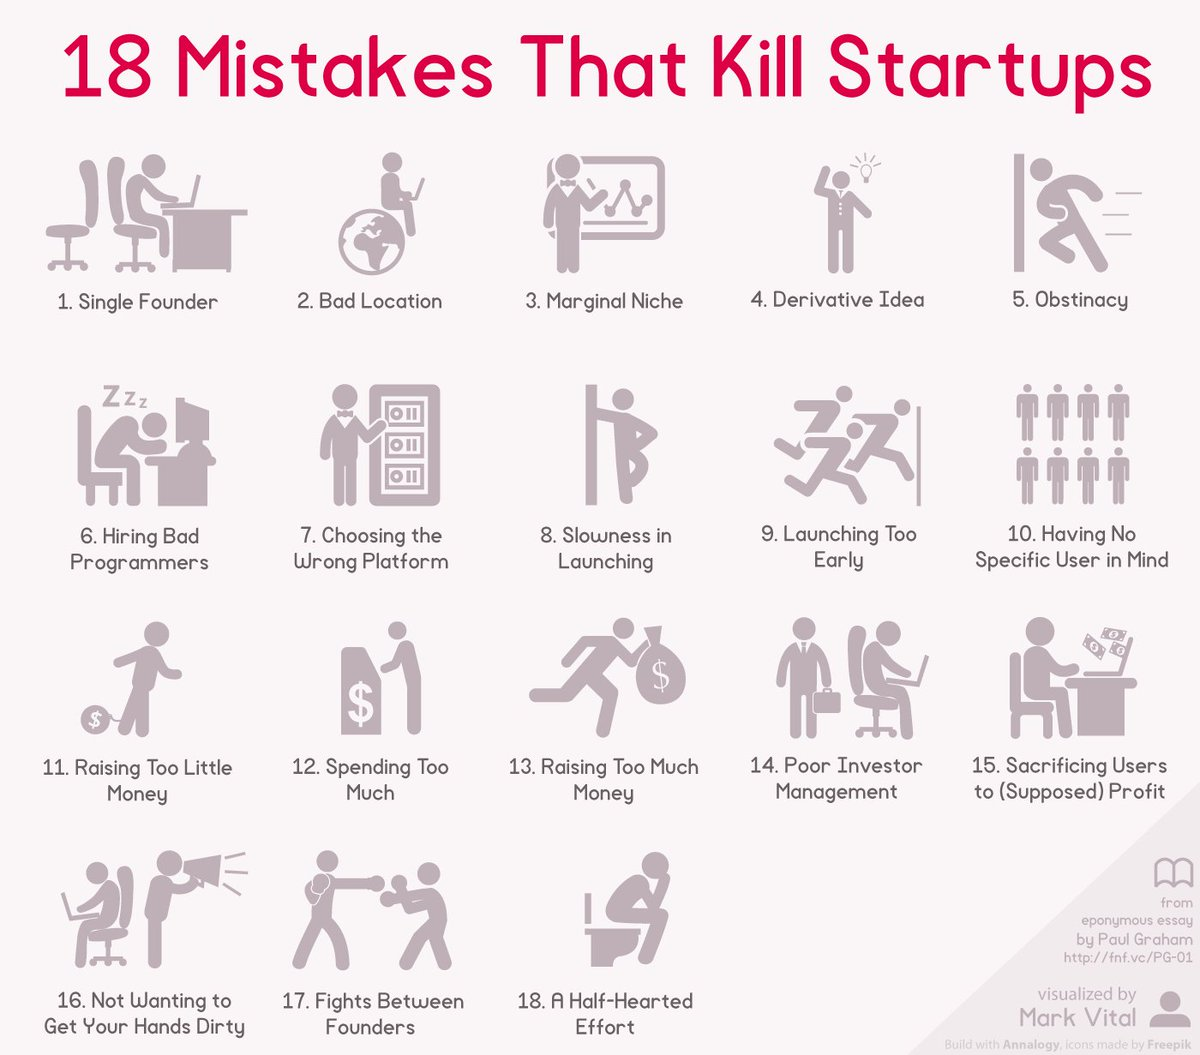 The Top 18 Entrepreneurial Mistakes in Launching and Building Your #Startup  http:// bit.ly/2A3Zprd  &nbsp;   via @larrykim  #entrepreneurship #growthhacking #innovation #VC #tech @GrowUrStartup @alvinfoo @KaiGrunwitz @robvank @enricomolinari @helene_wpli @HeinzVHoenen @TopCyberNews<br>http://pic.twitter.com/M0JIcI0ugL